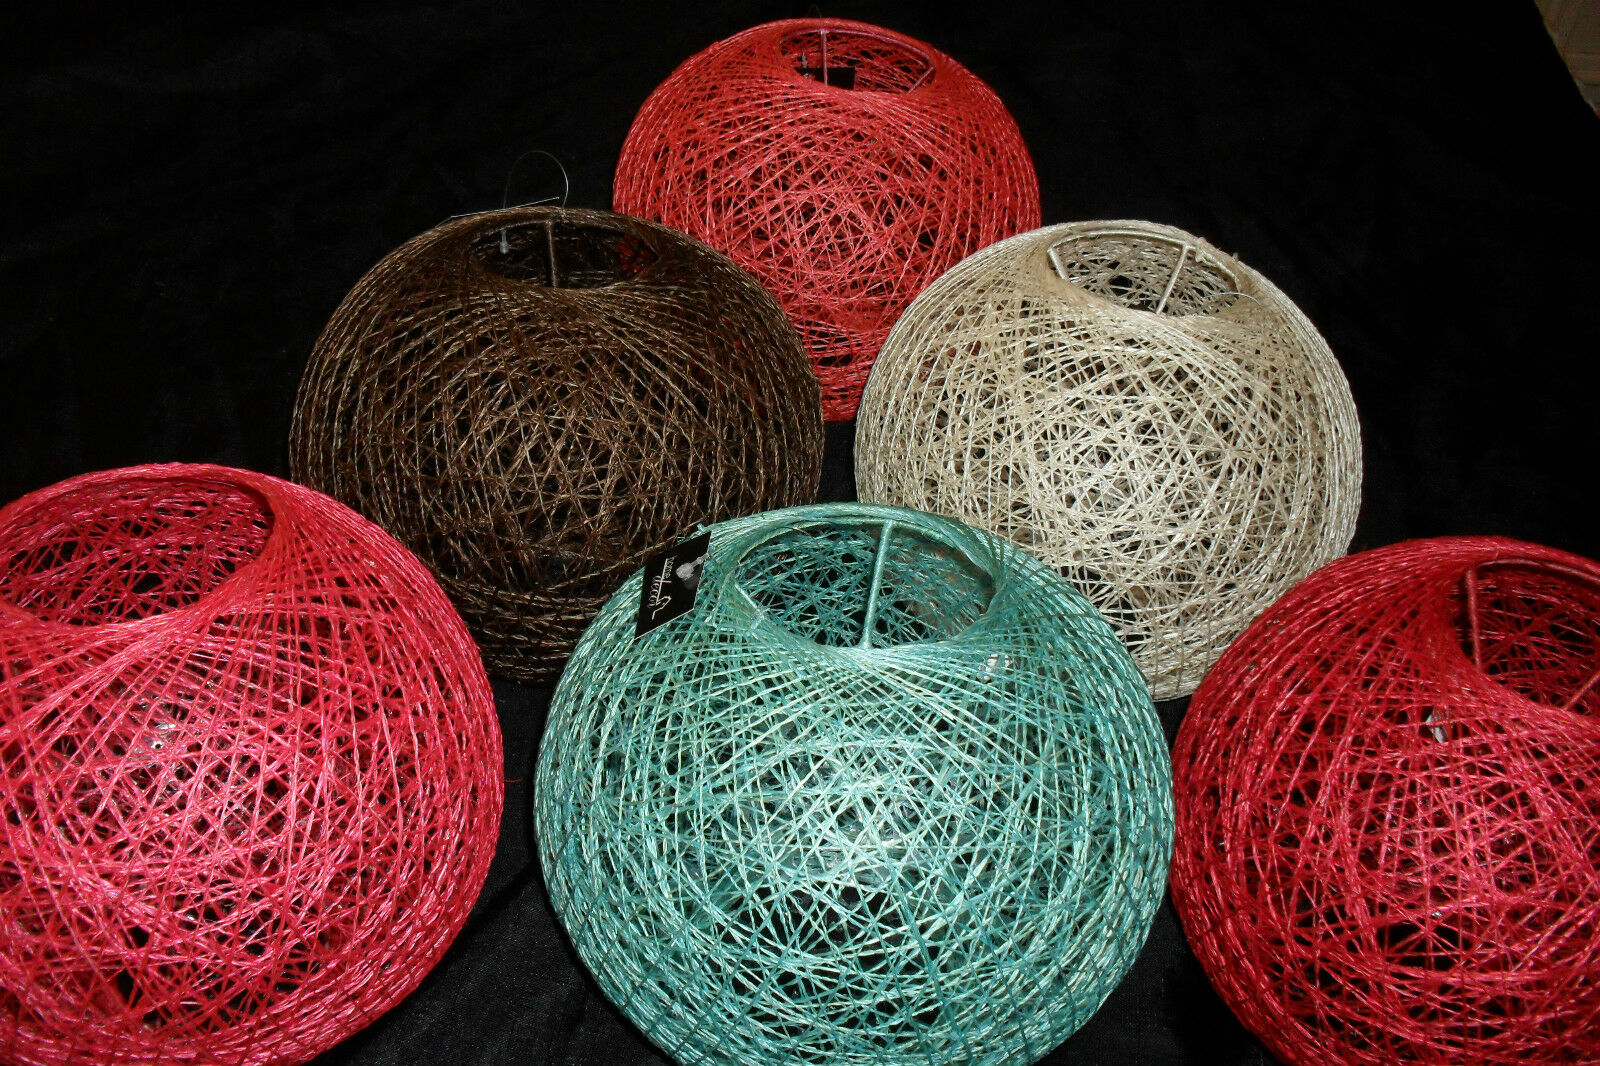 Rattan Lamp Shades Rattan Ball Ceiling Light Lamp